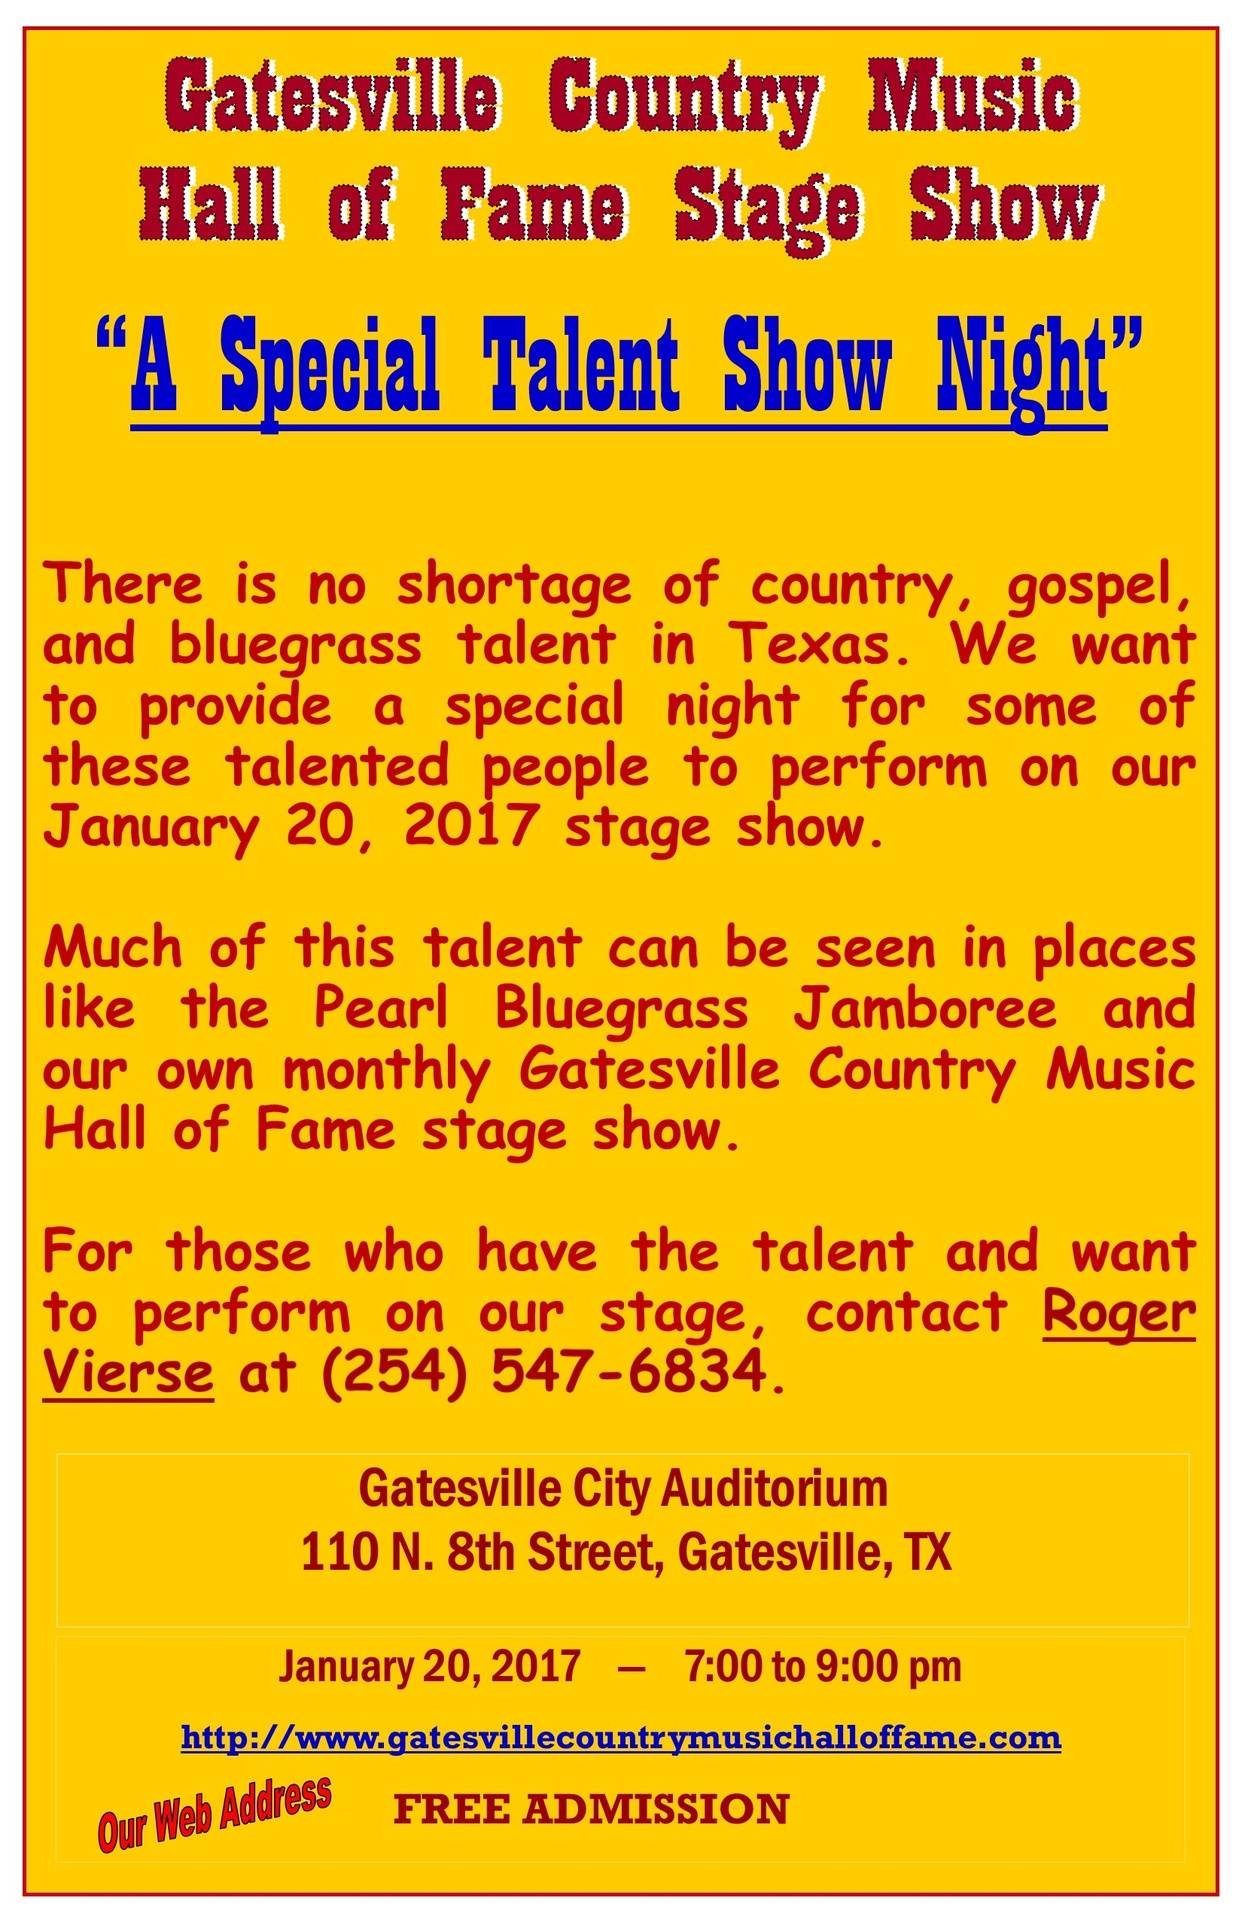 A Special Talent Show Night